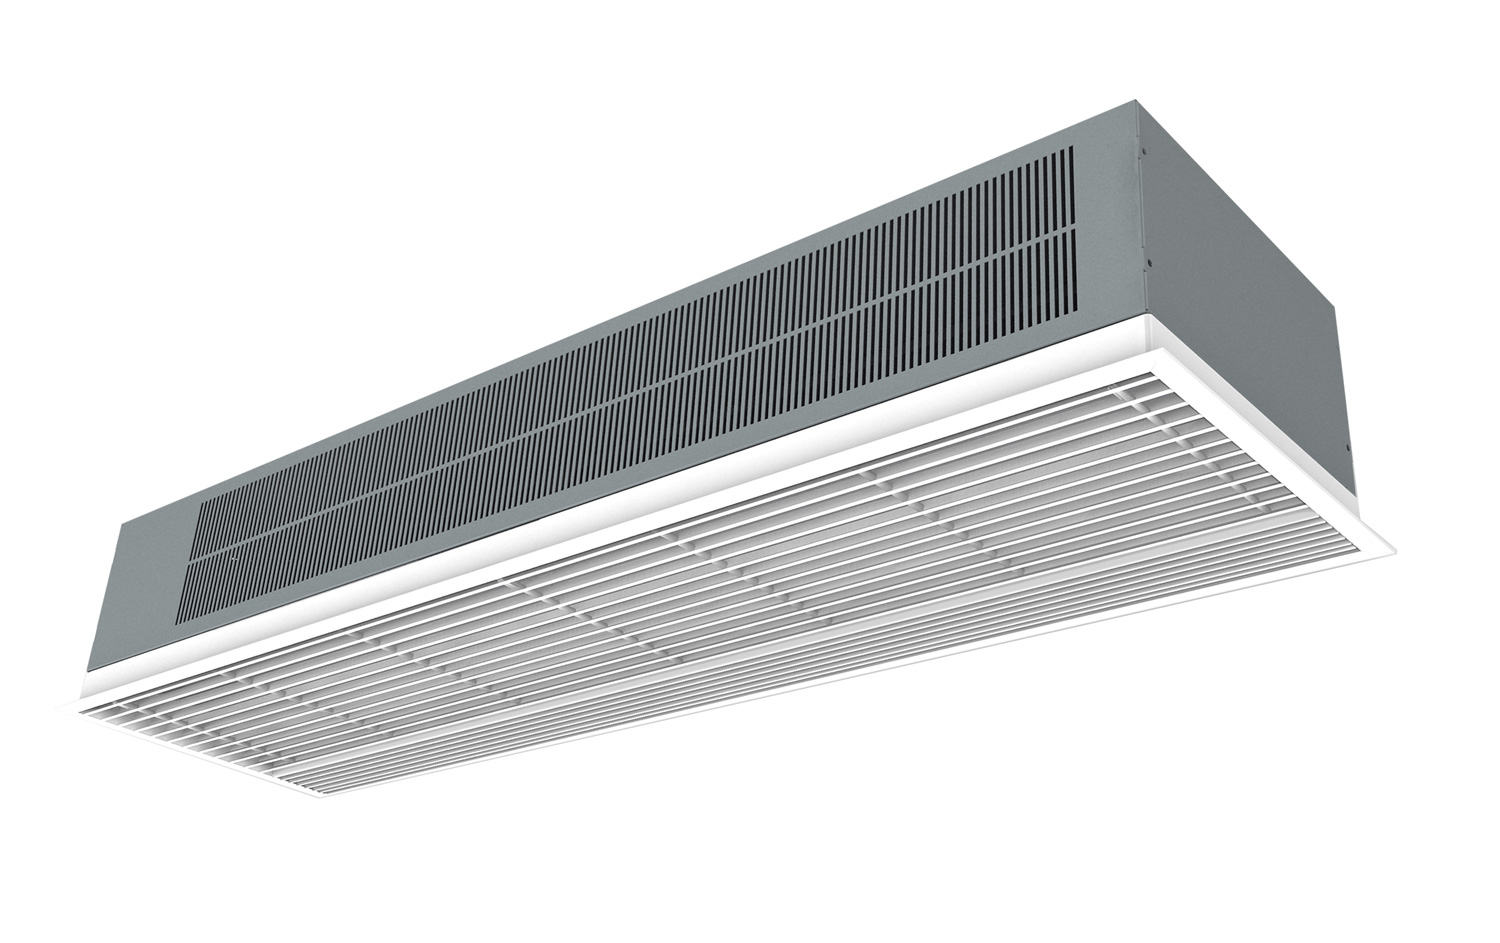 recessed airtecnics product curtains prod horizontal windbox cold curtain mount hot air panel